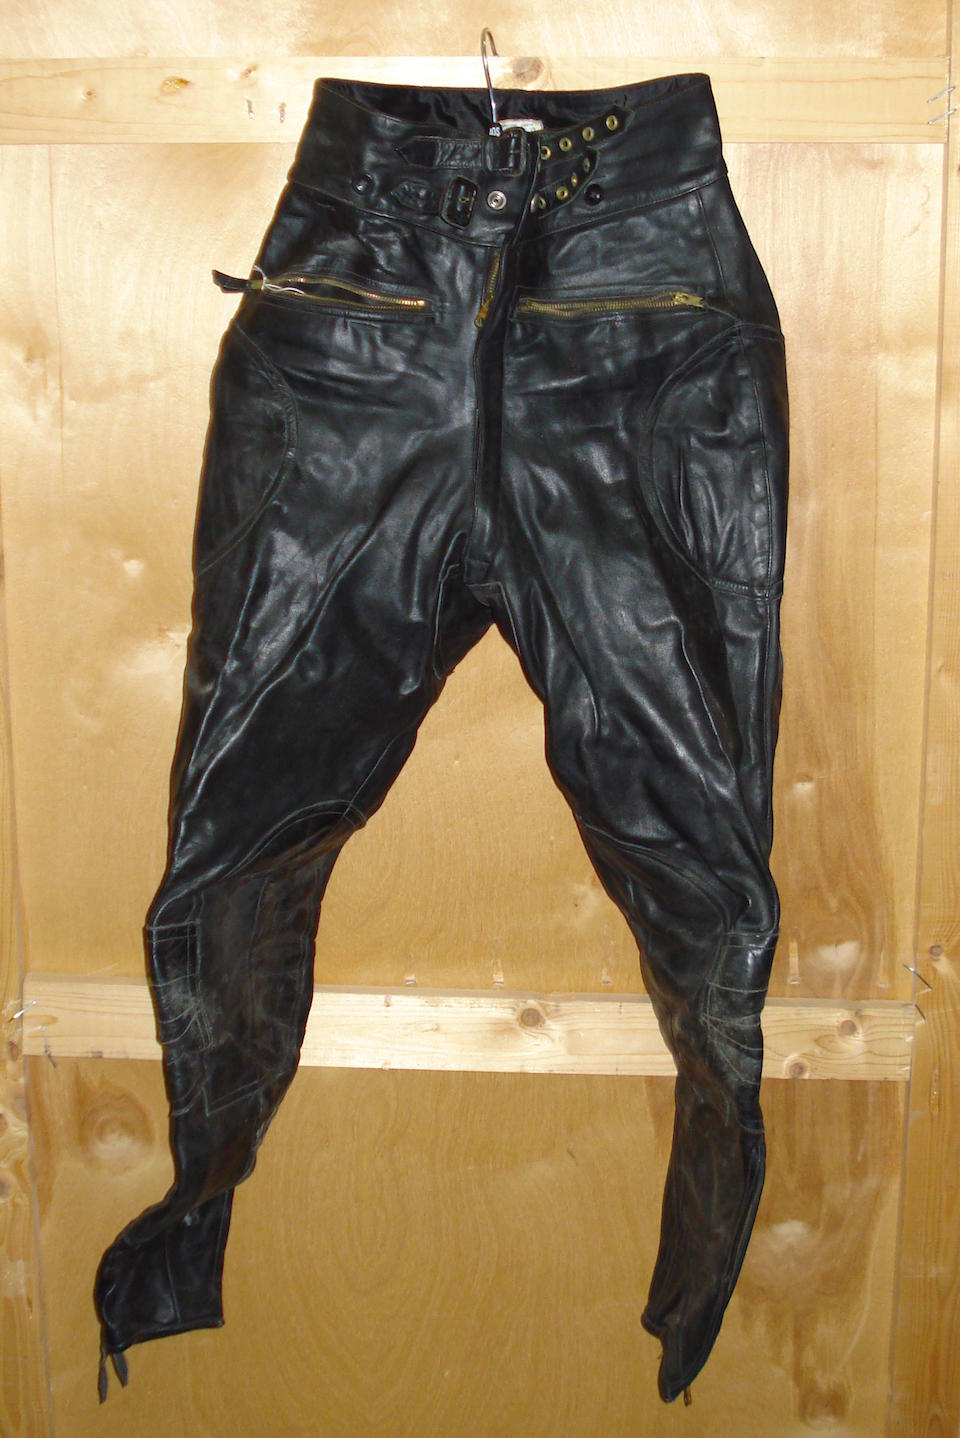 A set of S Lewis's leathers,